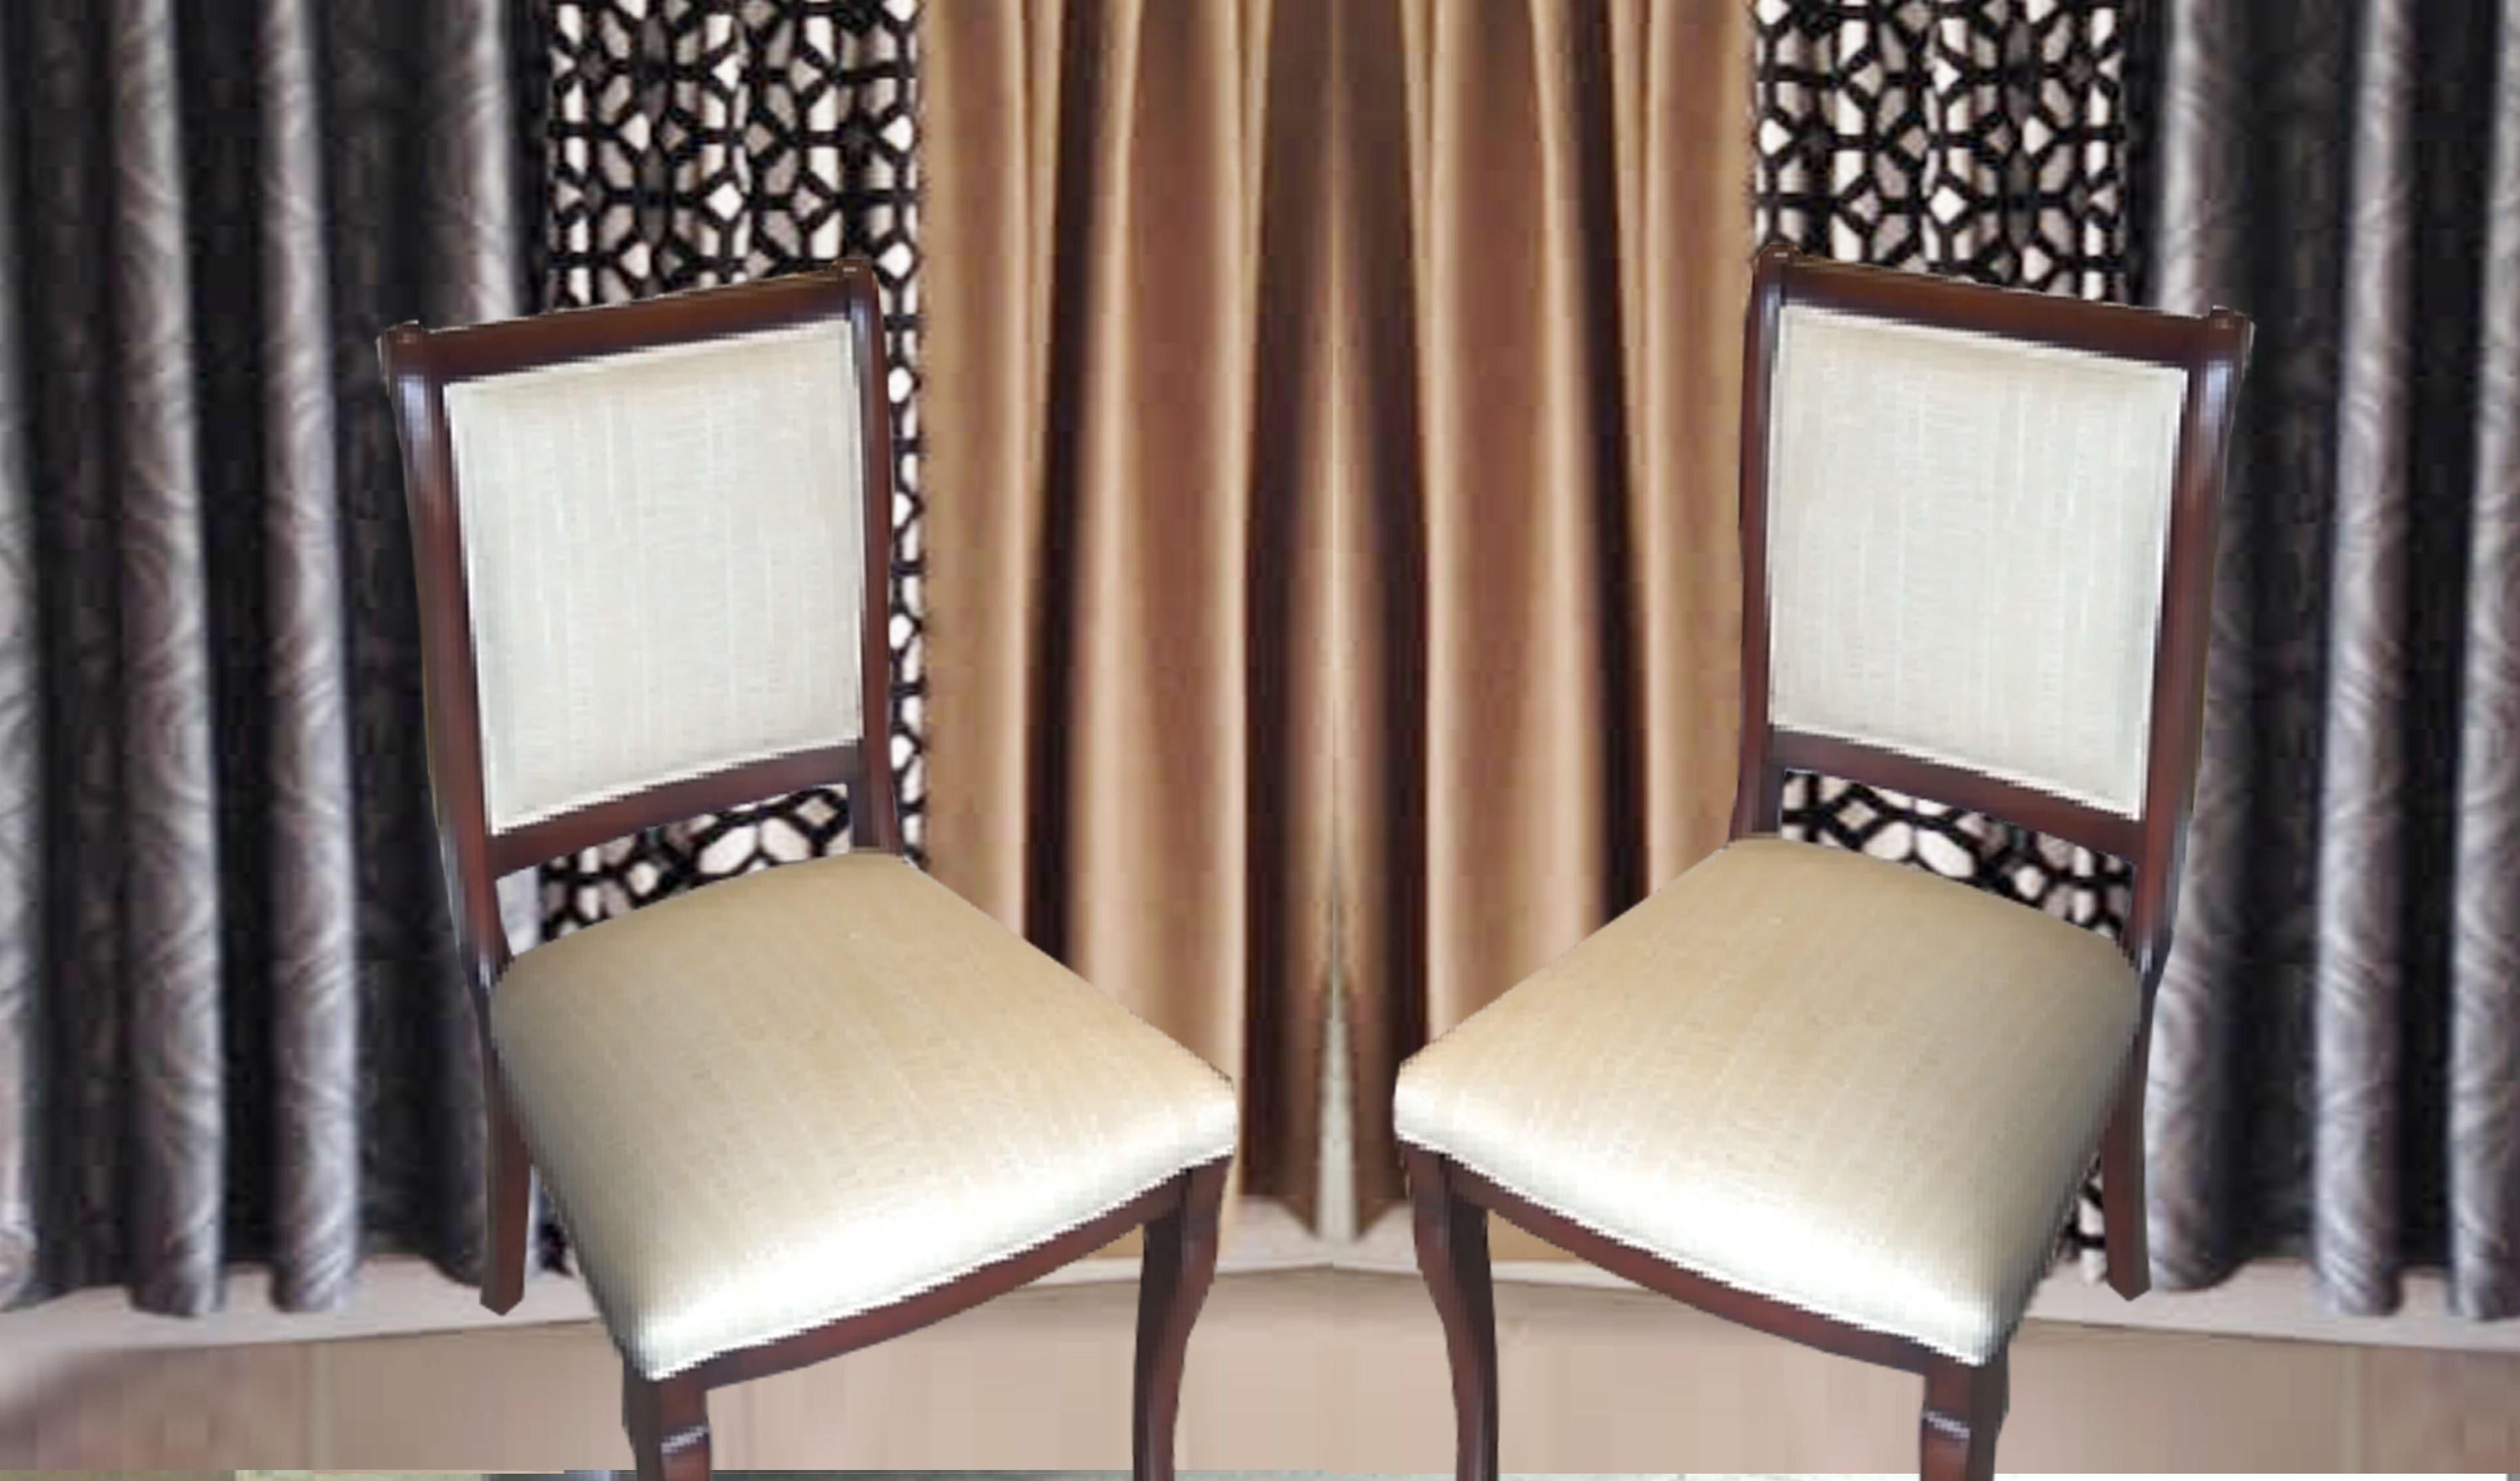 Dining Room Reupholster Chairs Chair Seats Video Diy